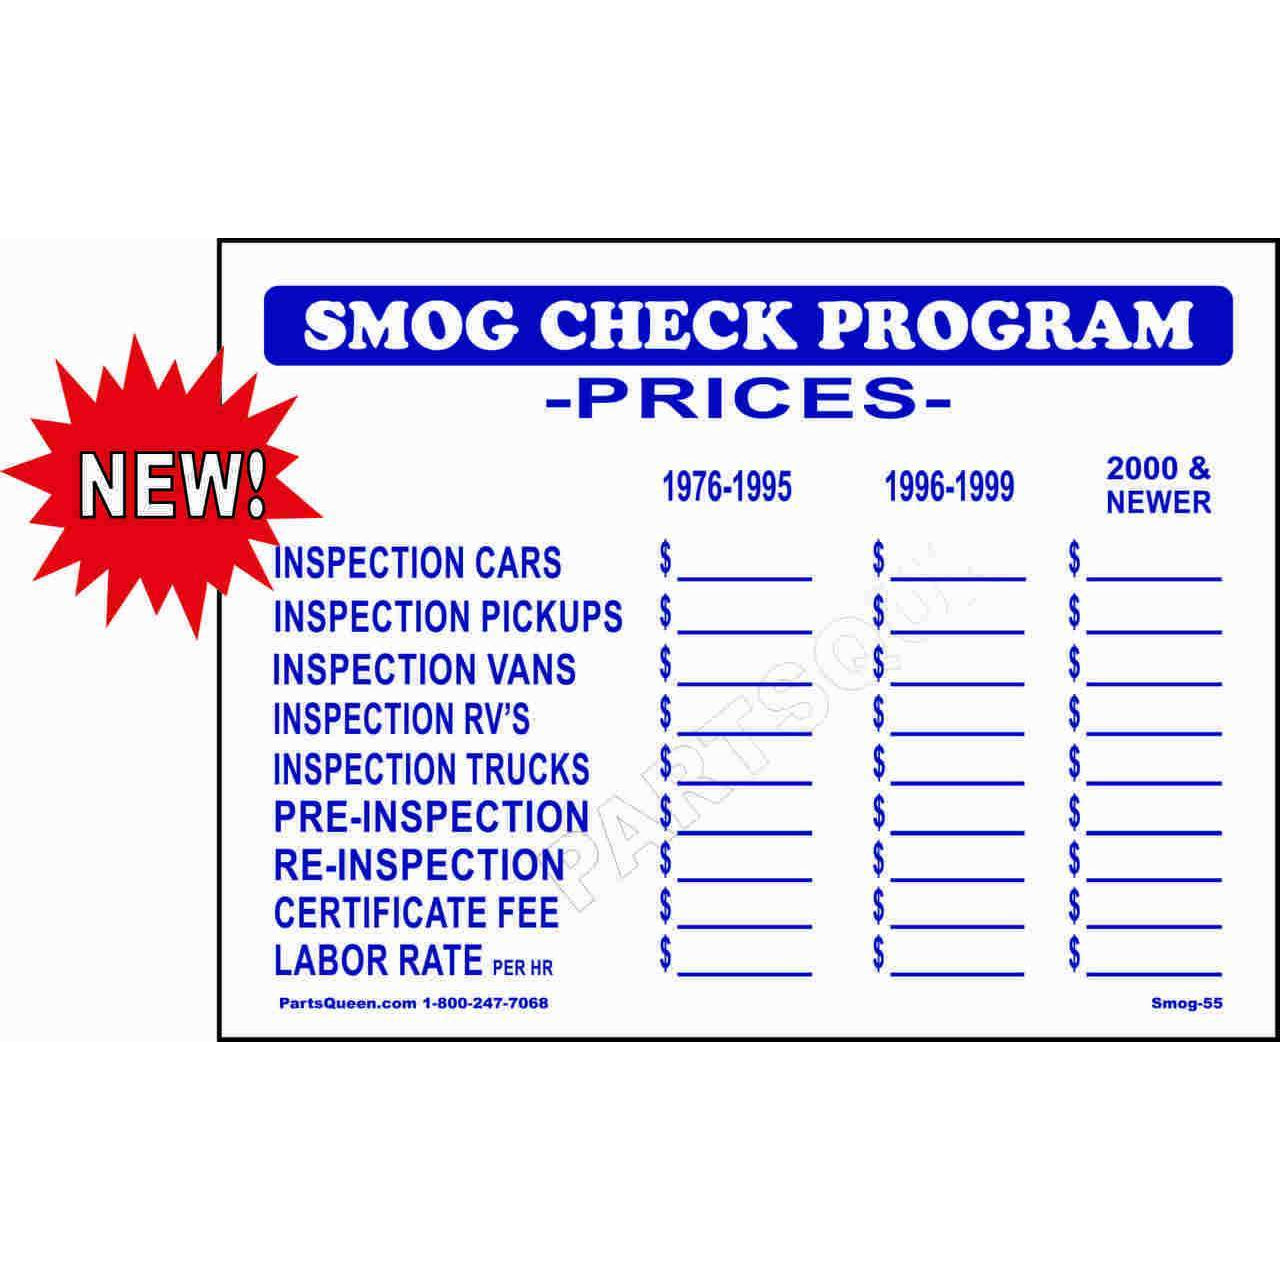 NEW SMOG CHECK PRICE SIGN SMOG-55